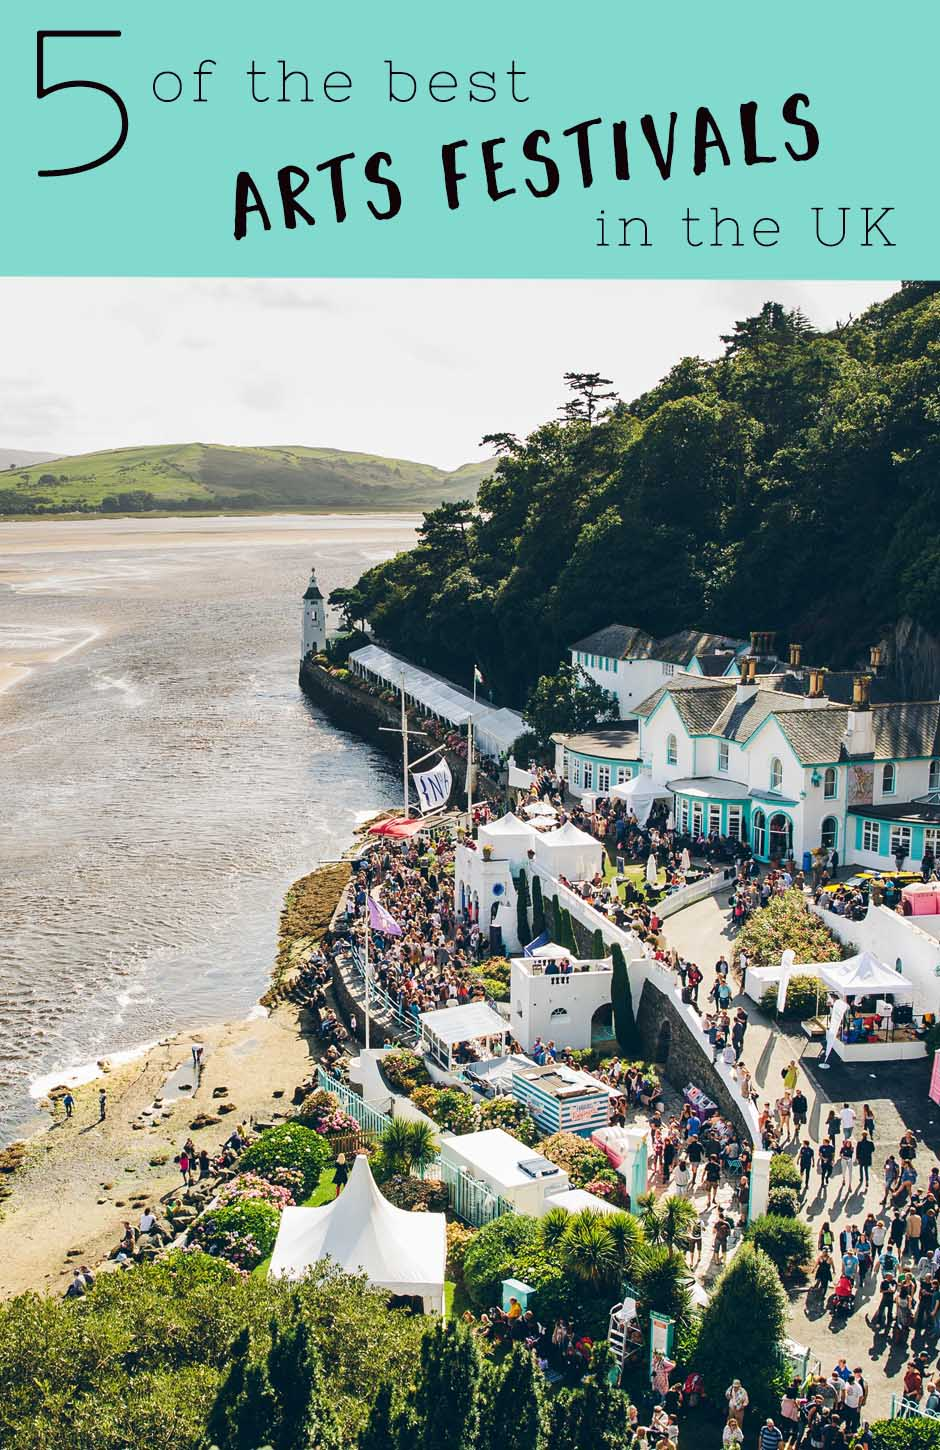 Best arts festivals in the UK